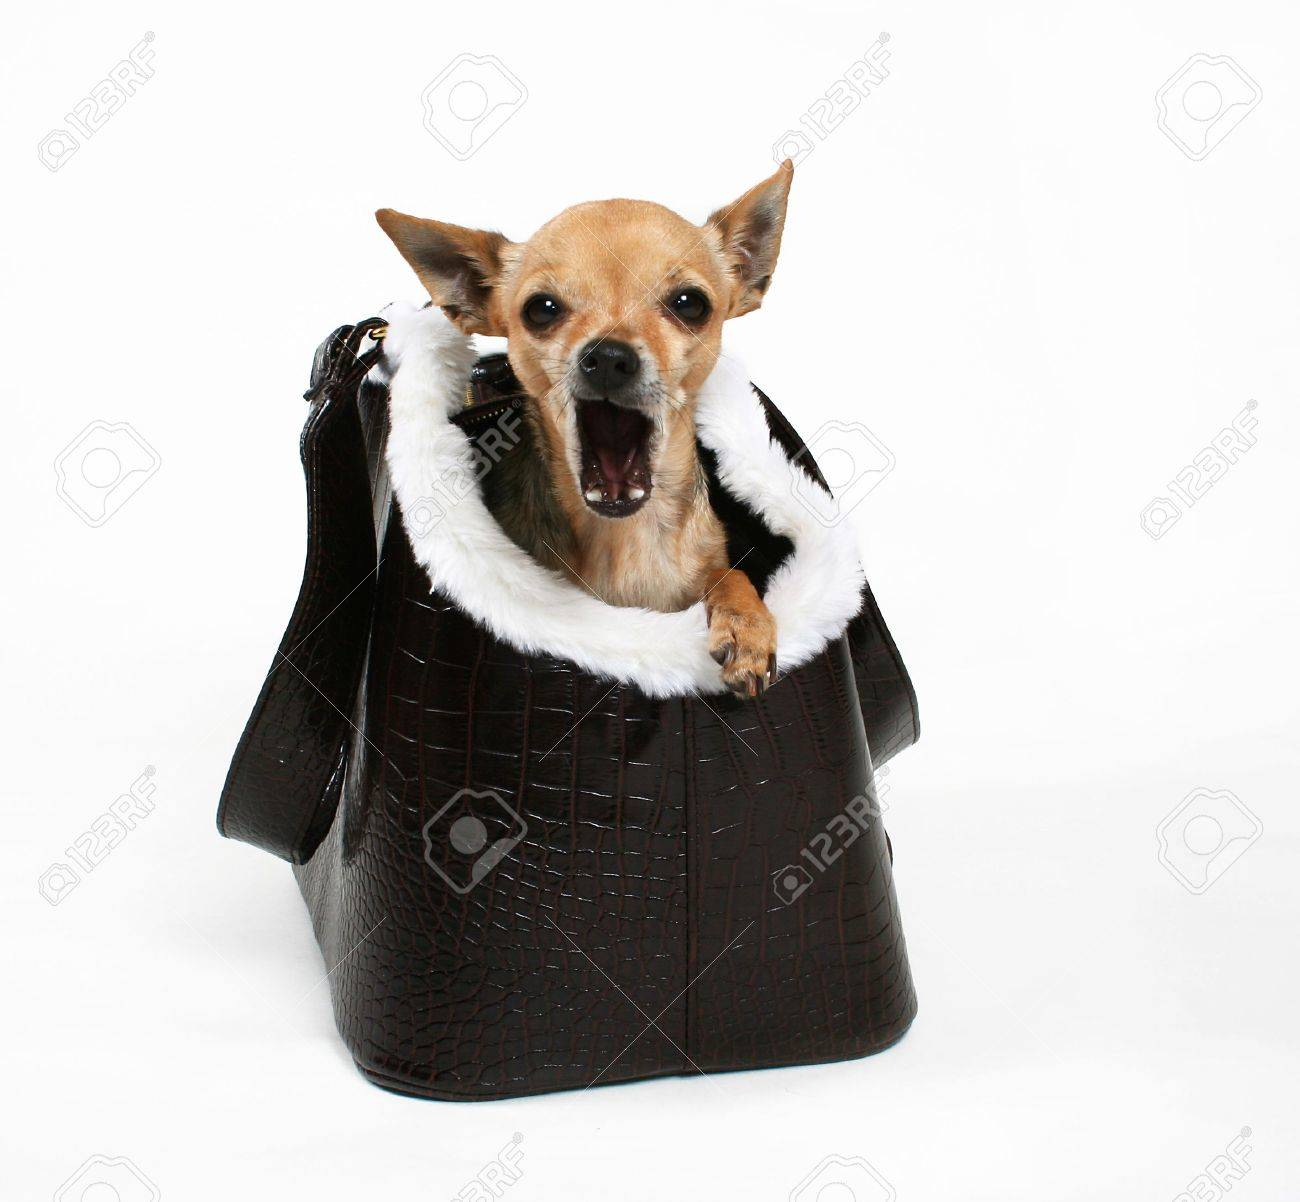 A Tiny Chihuahua In A Bag Or Purse For Dogs Stock Photo, Picture ...